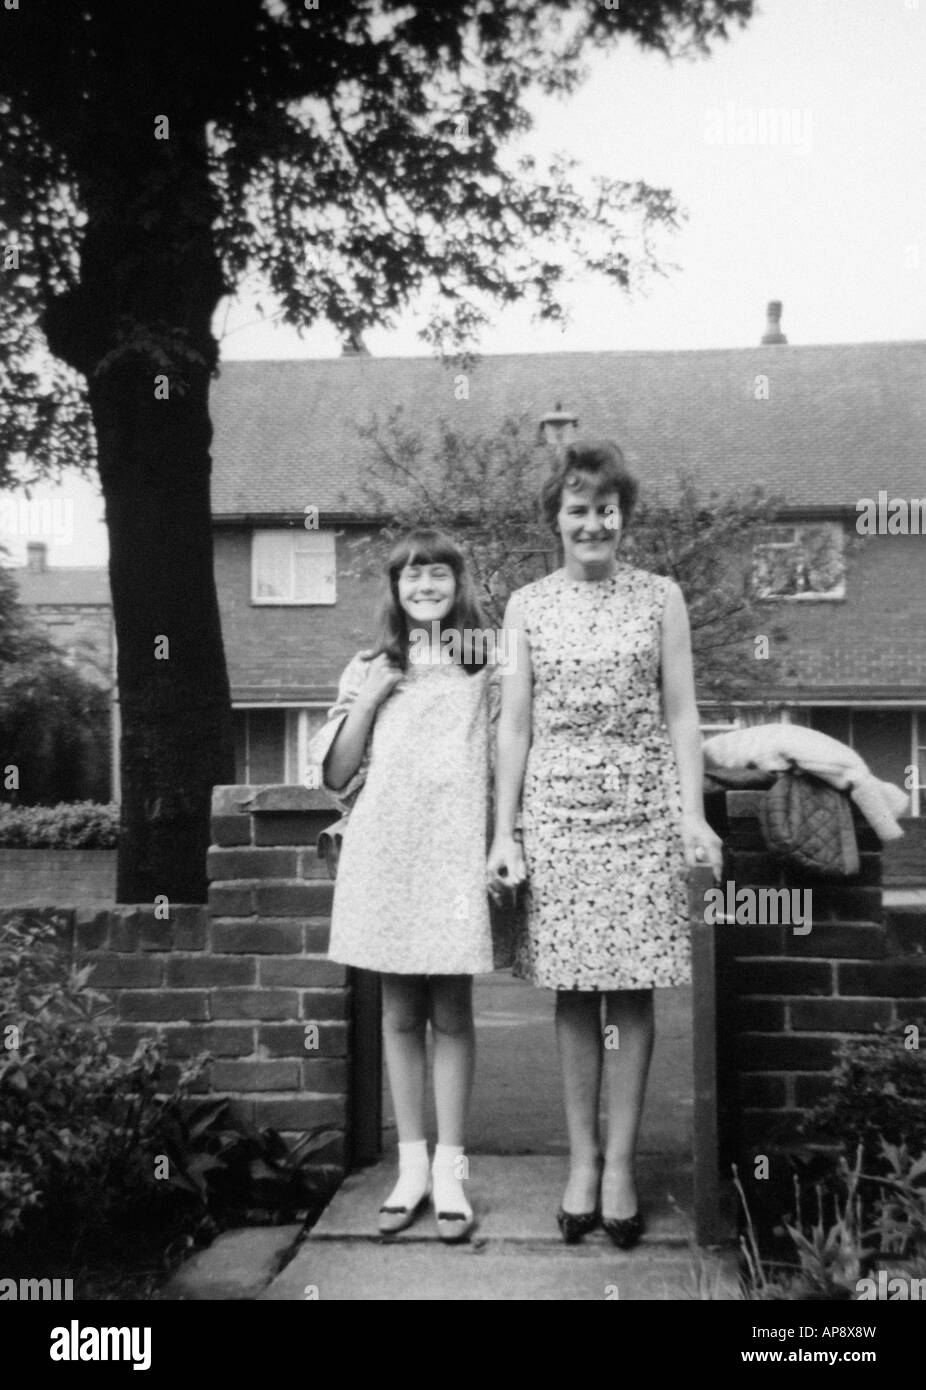 Old black and white family photograph snap shot portrait of mother and daughter stood outside their house circa 1950